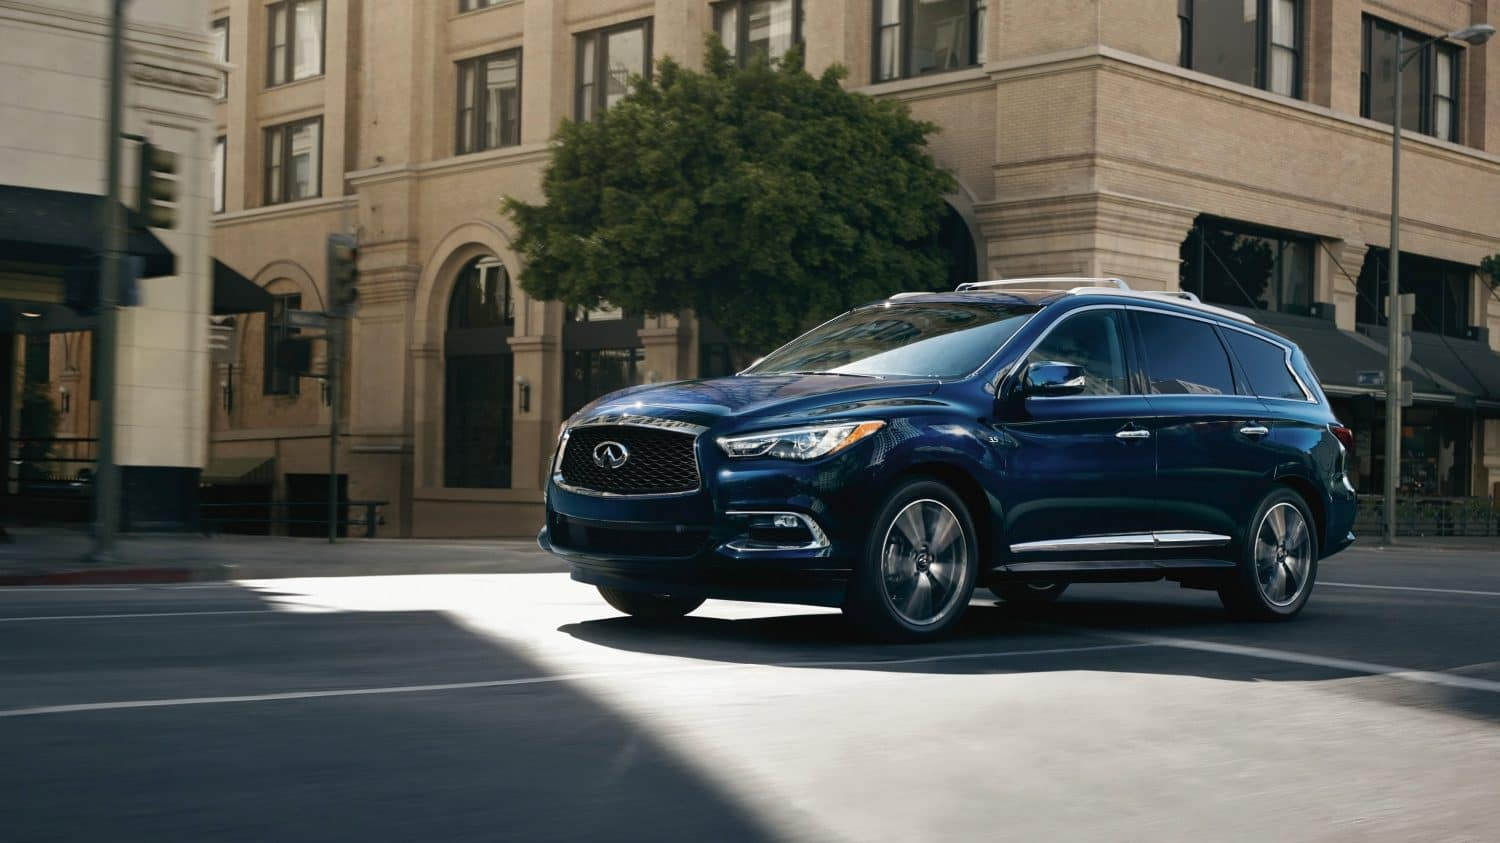 hight resolution of both crossovers look great but the more toned down looks of the enclave will age with more class that said the qx60 s more striking design will attract